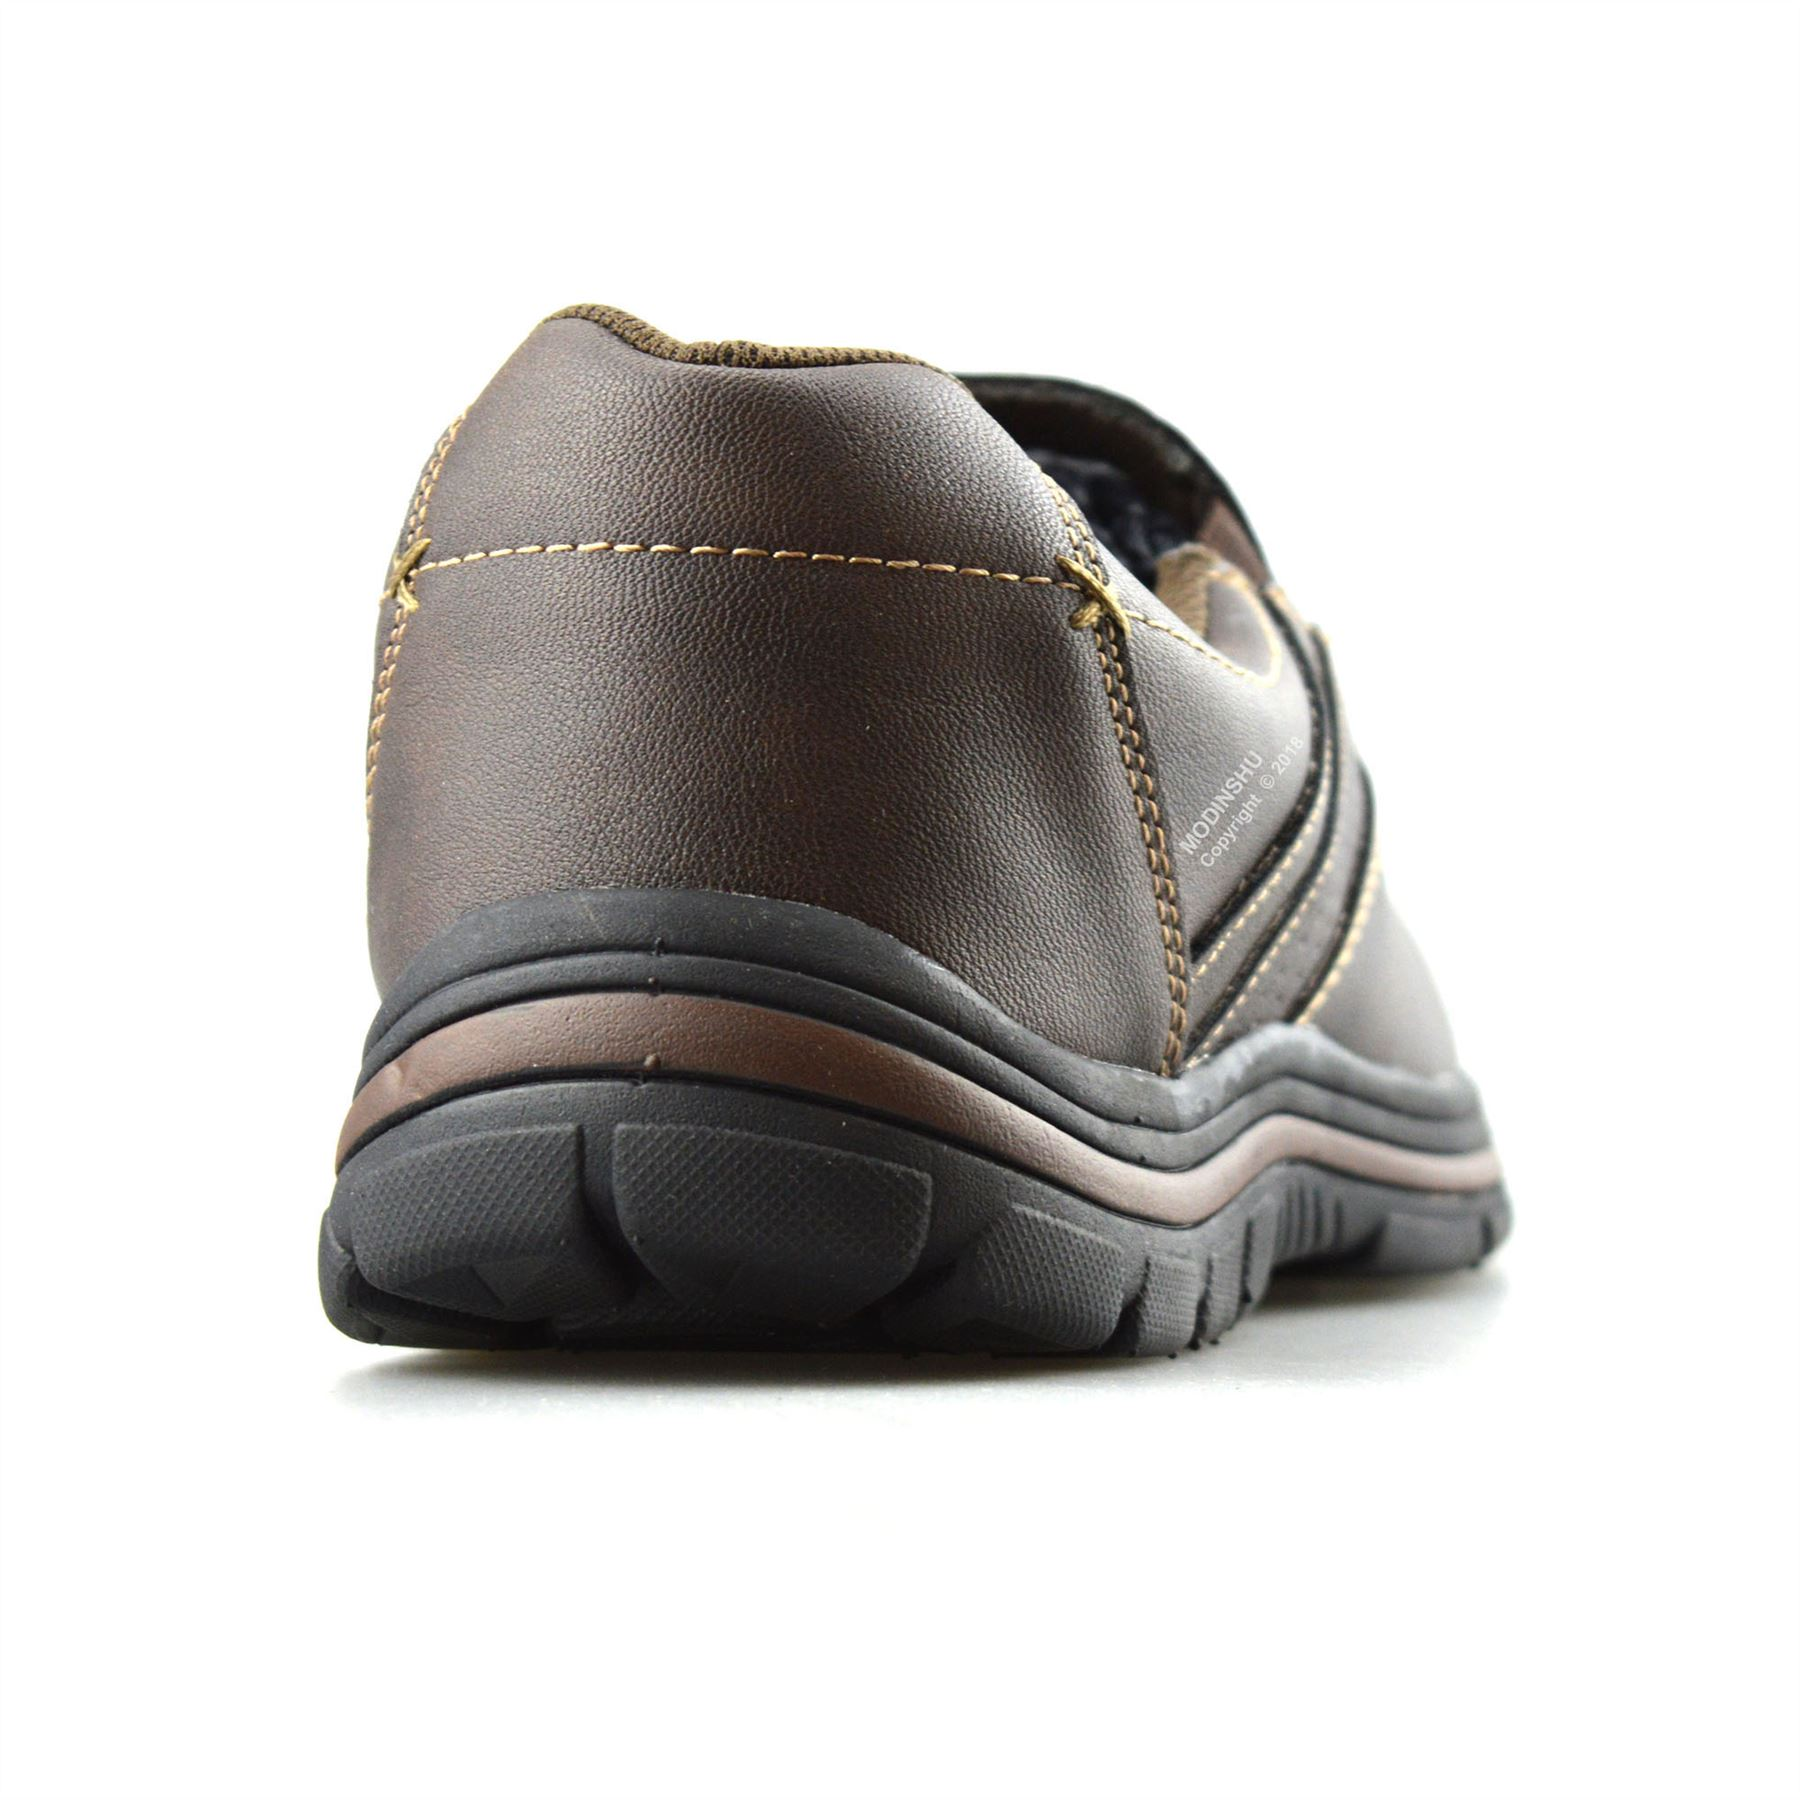 Mens-Casual-Memory-Foam-Slip-On-Walking-Moccasin-Loafers-Driving-Boat-Shoes-Size thumbnail 20